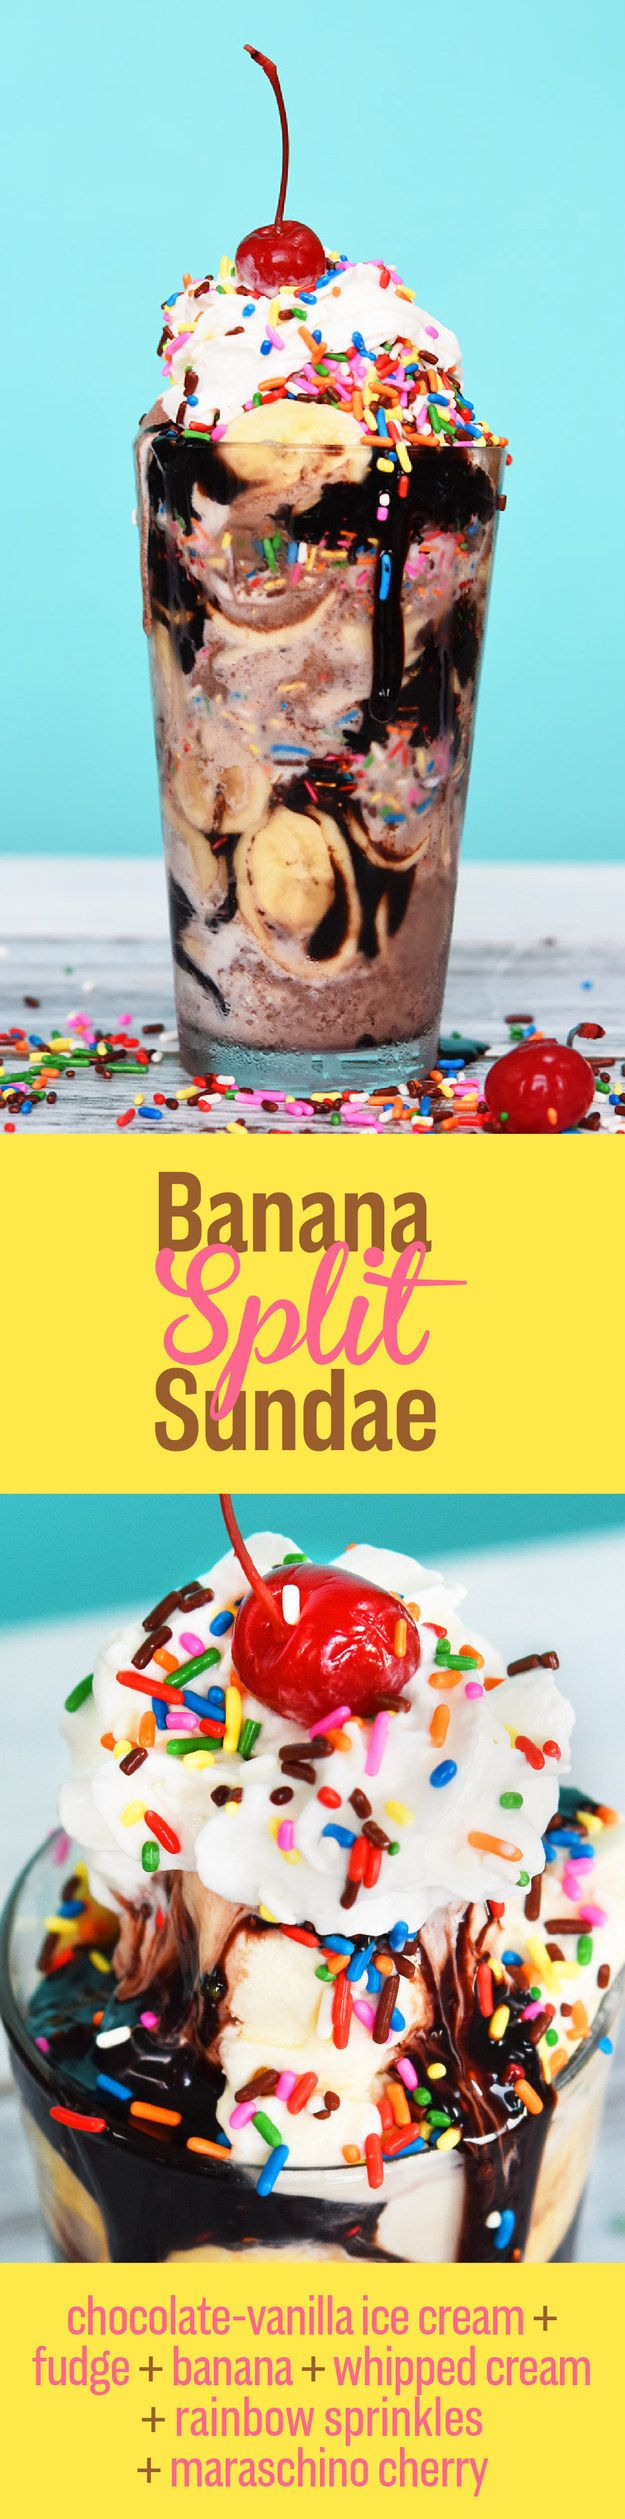 The Banana Split Sundae